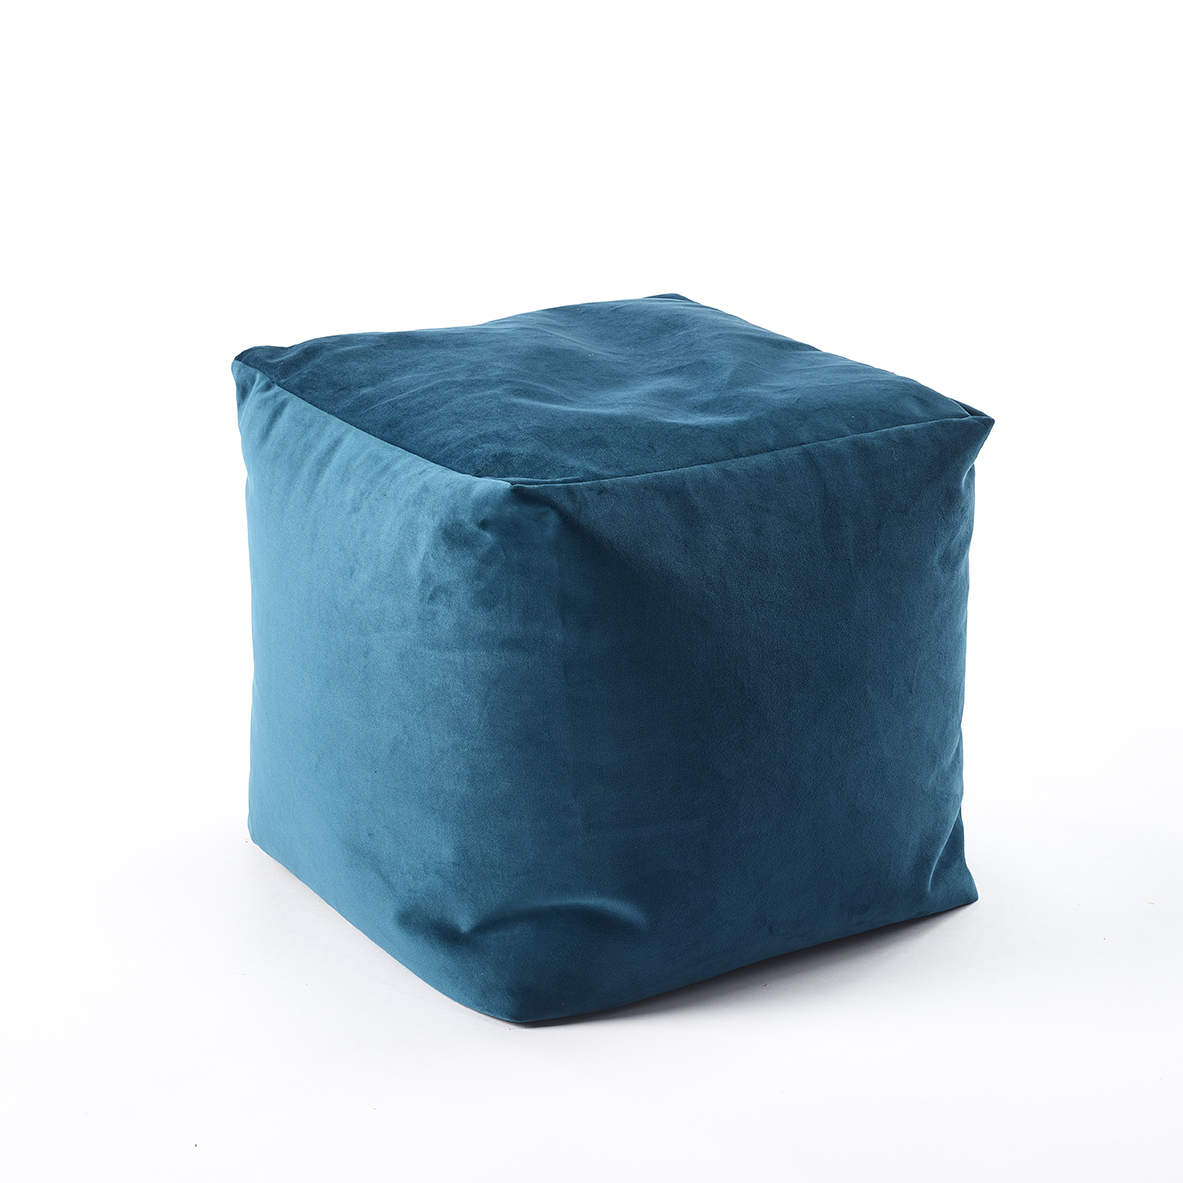 The Home Furnishings Company Teal Velvet Style Luxury Cube Pouffe 45x45x45cms